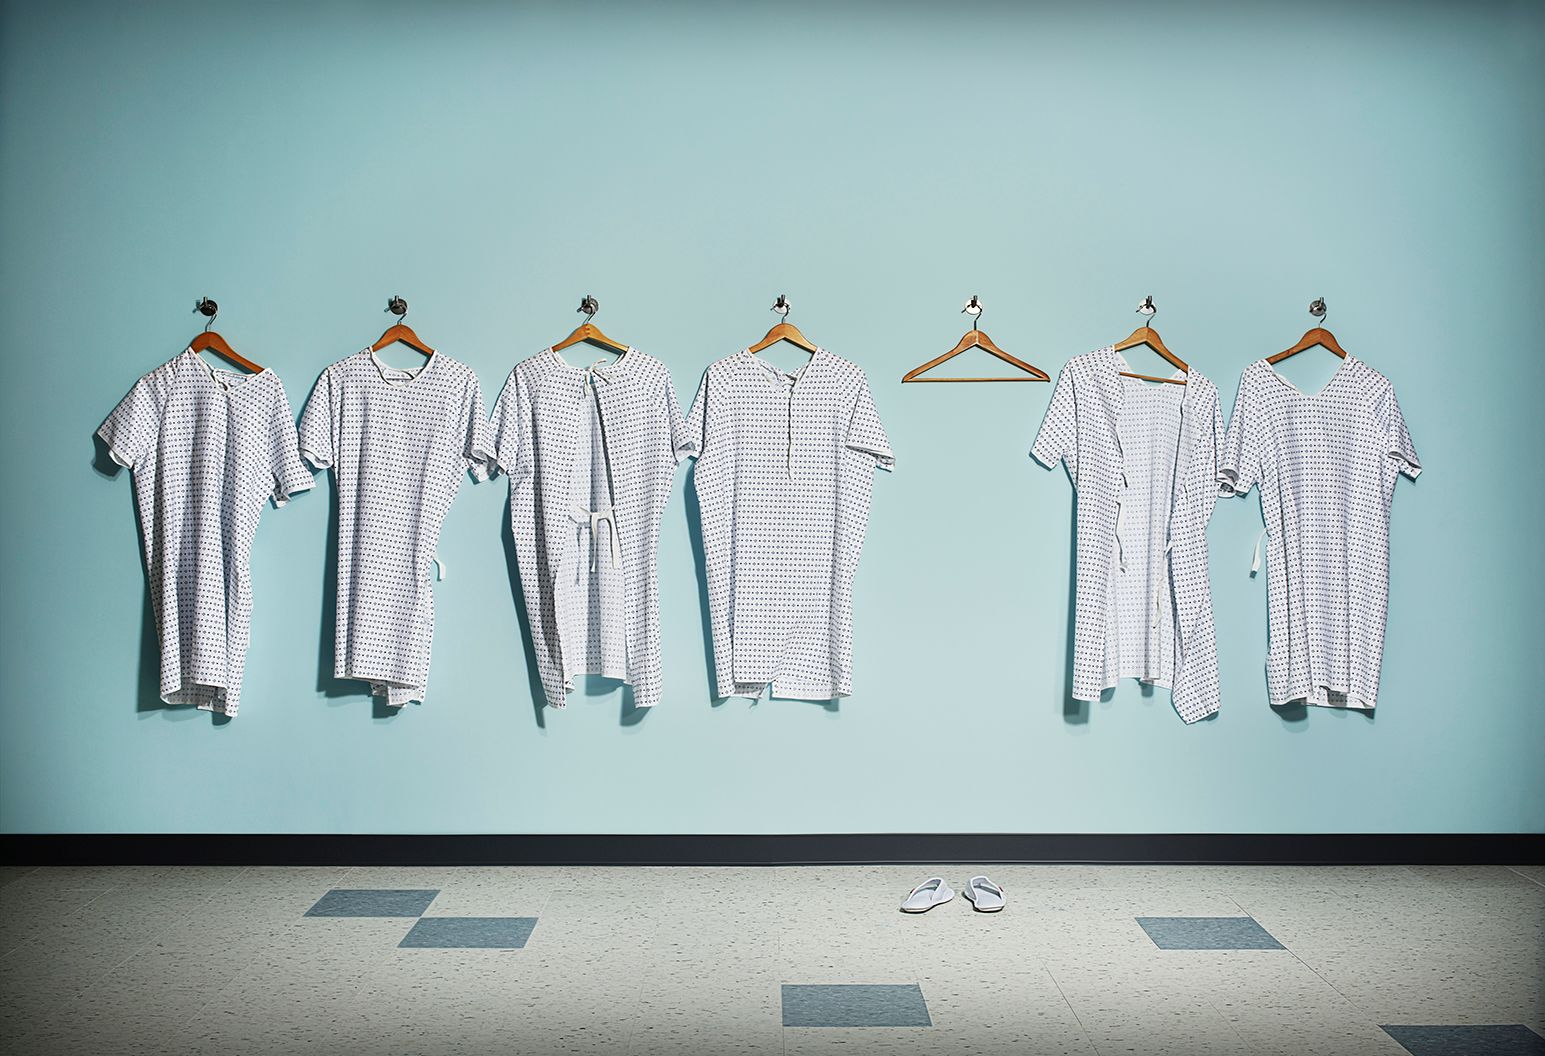 There are seven hangers lined up in a row on the wall. All but one of them has a patient robe hanging from it.